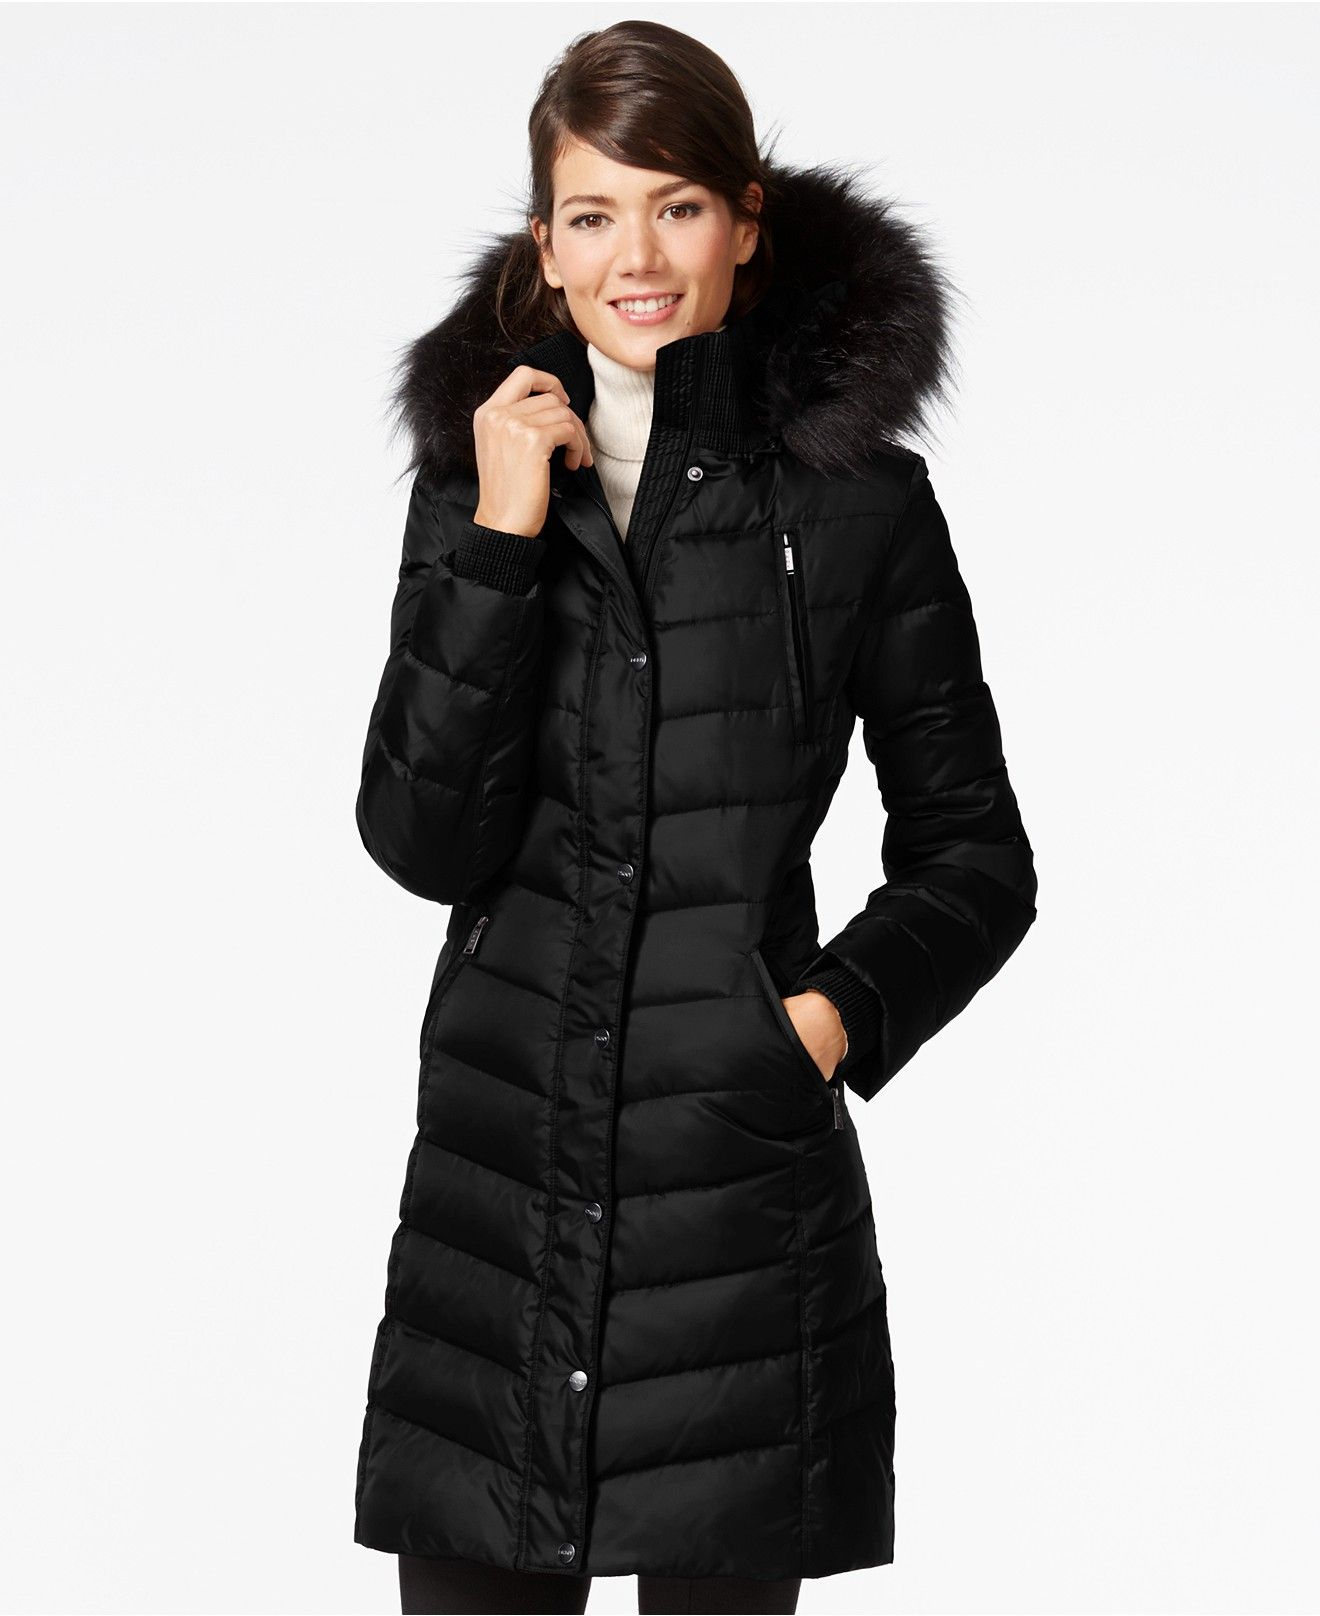 Dkny Faux-Fur-Trim Hooded Down Puffer Coat - Coats - Women -1961